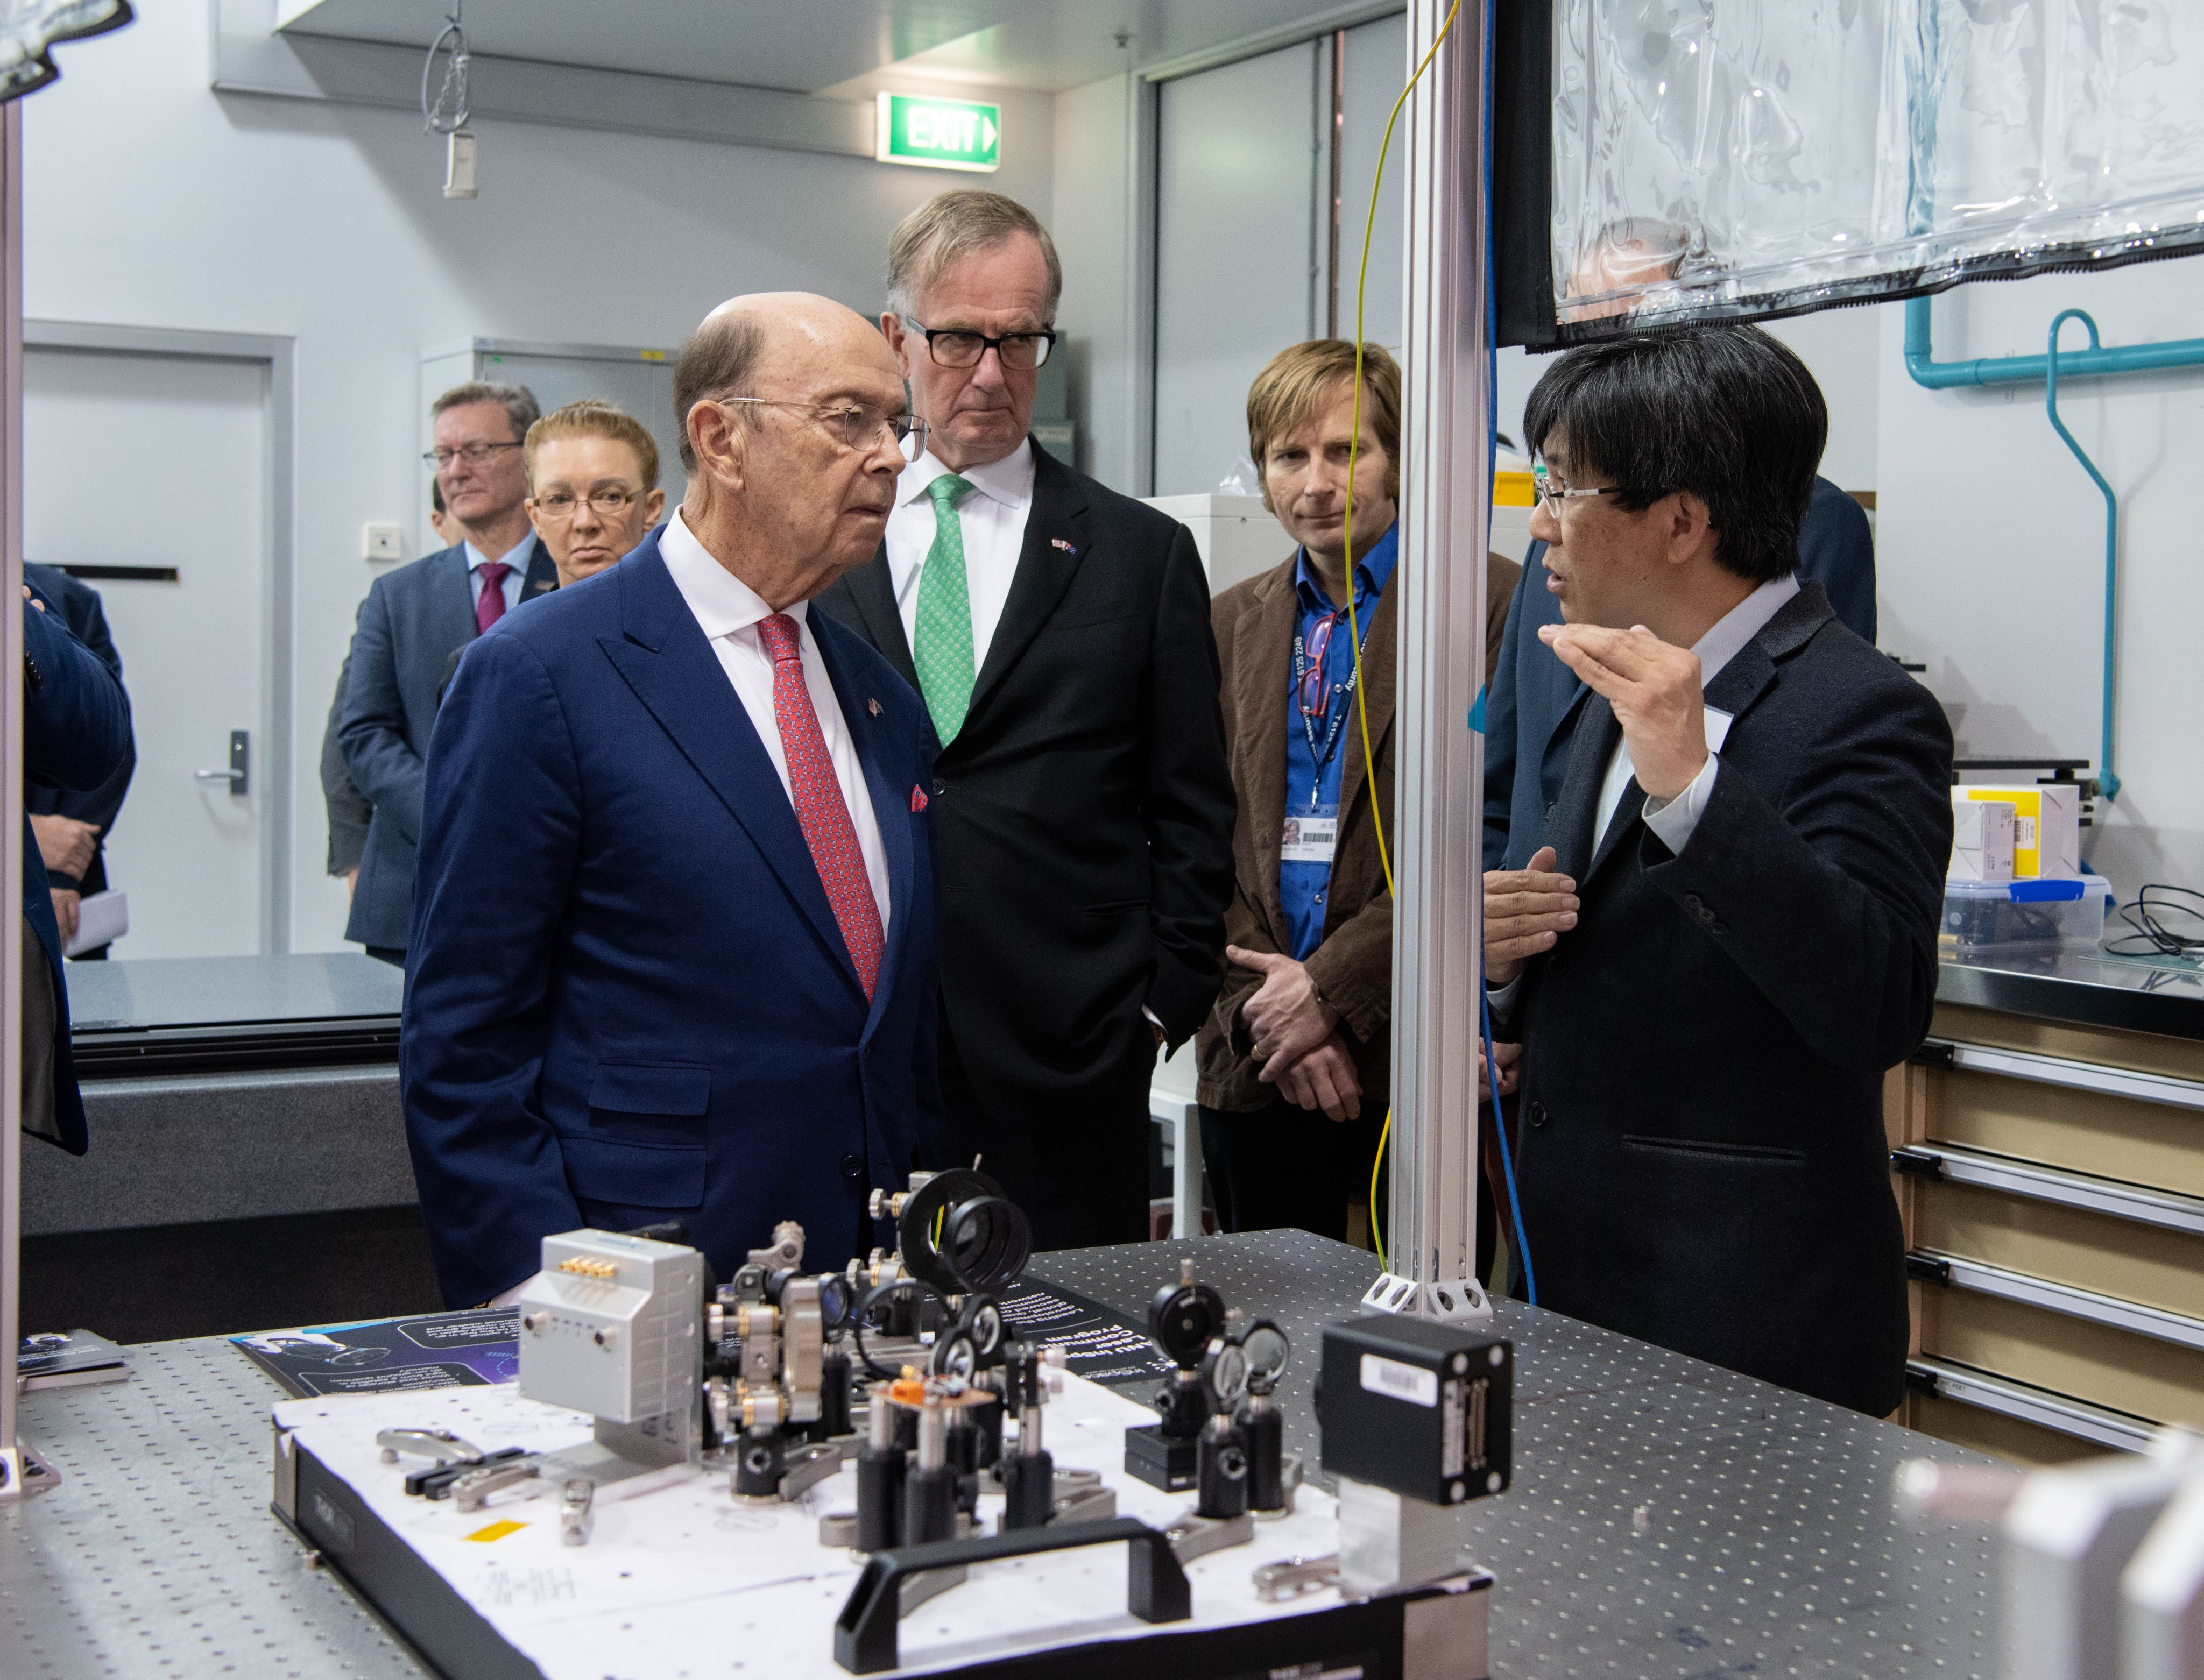 Secretary Ross listening to a person gesturing with equipment in an engineering lab